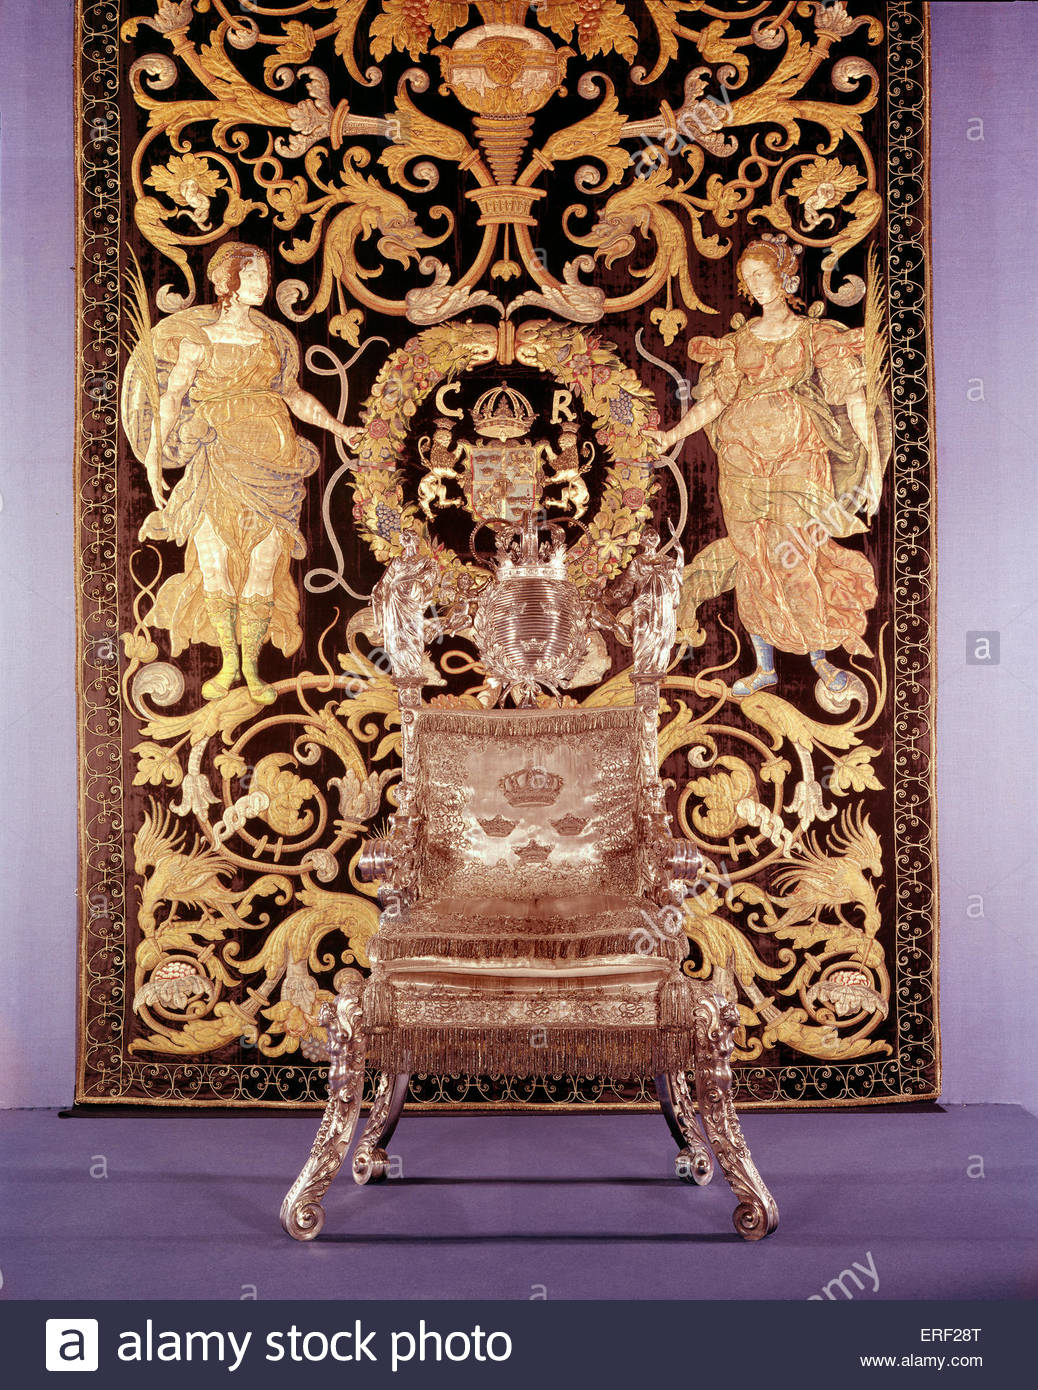 The Swedish Royal Coronation chair. Embroidered crest with letters CR. - Stock Image